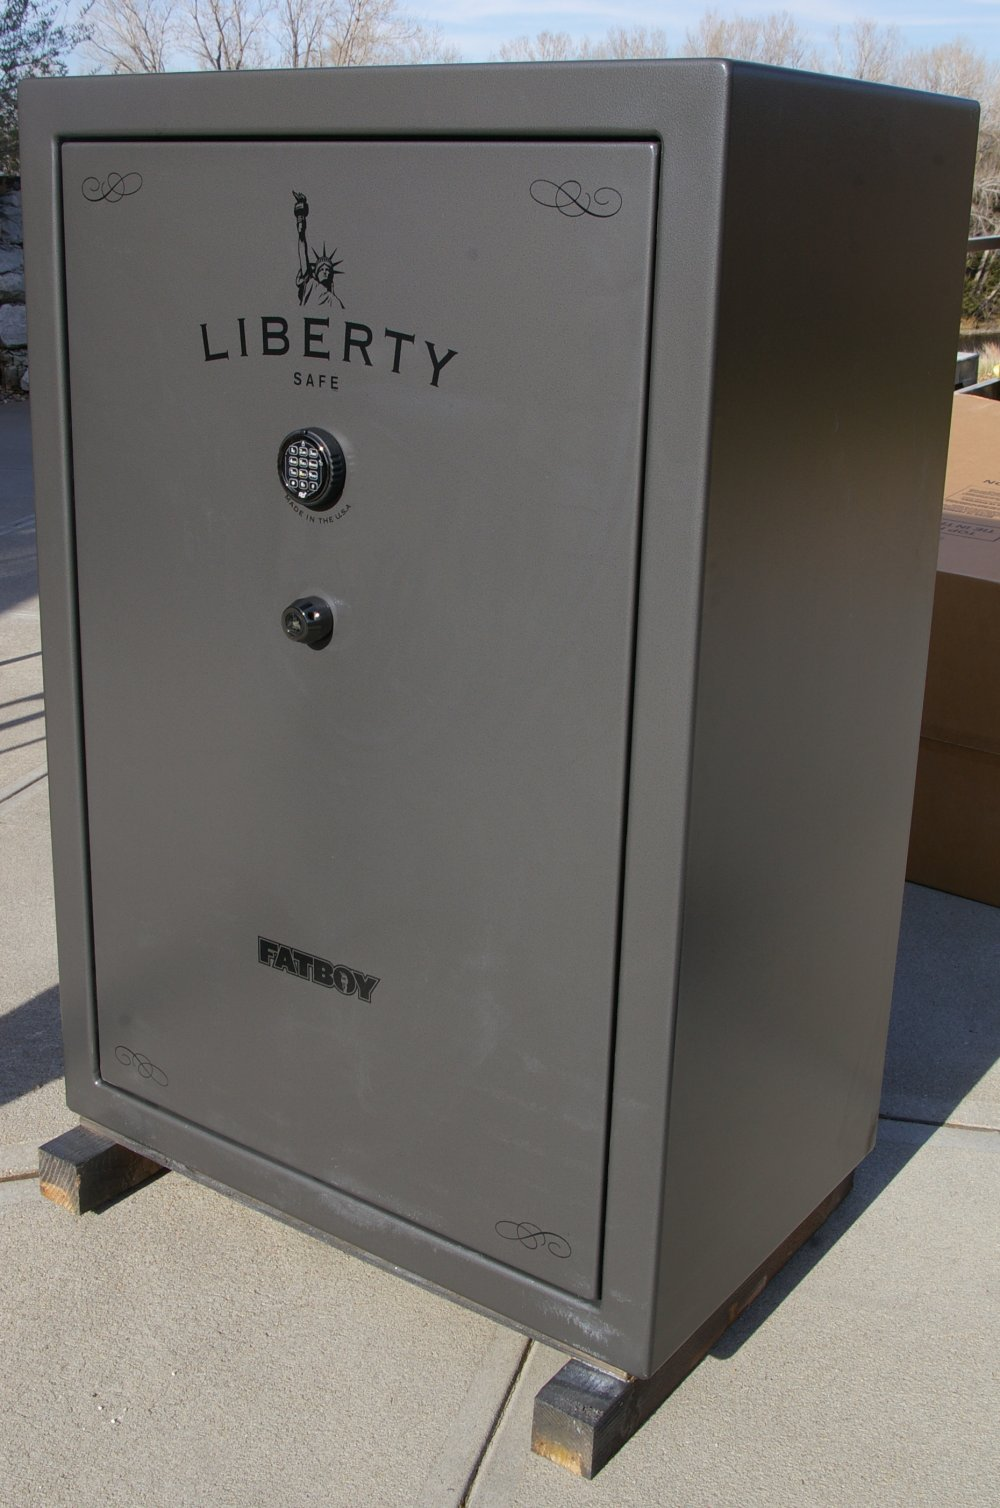 Liberty Fat Boy Safe